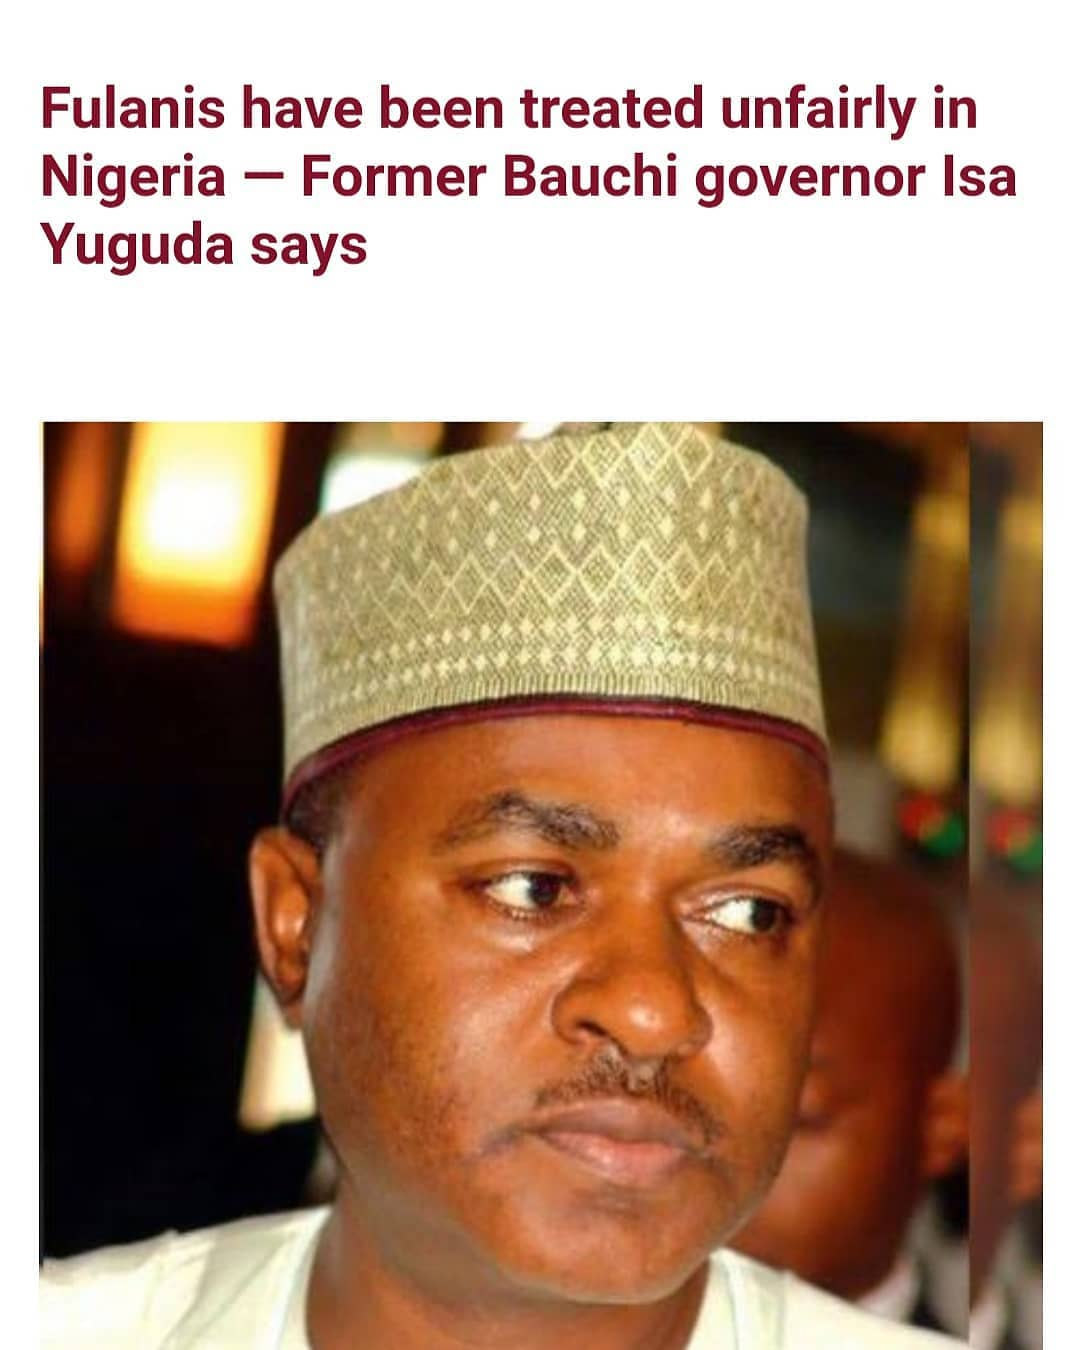 """Mallam Isa Yuguda, a former governor of Bauchi state, has alleged that the Fulani people in Nigeria are subjected to unfair treatment.  Speaking with journalists in Bauchi on Monday, February 22, Isa Yuguda said: """"I think the cattle rearers who have been herding for the past 200 years all over the country cannot just wake up in the morning and all of a sudden become AK-47 killers.  """"And most importantly, the neglect of the Fulani, especially the cattle rearers who are presently giving Nigeria a minimum of one million cattle every day to slaughter and take as beef, their treatment by the Nigerian people have been most unfair.  """"Most unfair in the sense that, at the time when Lord Luggard finished conquering northern Nigeria, they were the only source of revenue. They provided the revenue that jumpstarted development in terms of monopolizing infrastructure in the north including Benue state where they have been chased out now.  """"They are pastoralists, they are people who provide beef for the country and you can see them as agricultural ventures or animal husbandry.  """"There have been billions and trillions of investments in agriculture, in the forms of subsidies for fertilizer and so on, have you ever heard the federal government subsidizing pastoralism?  """"What I am saying, in essence, is that the Nigerian state has not been fair to these people. The mindset, especially down South is that the Fulanis are gun-carrying people. There has been a clamour by senior citizens of this country that we should carry weapons but Governor Mohammed (Bauchi governor) made a remark to that effect, everybody was sentimental.  """"When a senior elder statement said we should carry guns, where were you guys? Nobody wrote about it until Governor Mohammed spoke about it. These people deserve the right to defend themselves, let us stop being sentimental for God sake.""""  The statement by Bala Mohammed he was making reference to is the one he made on Thursday, Feb 11, that herdsmen need the AK-47 """